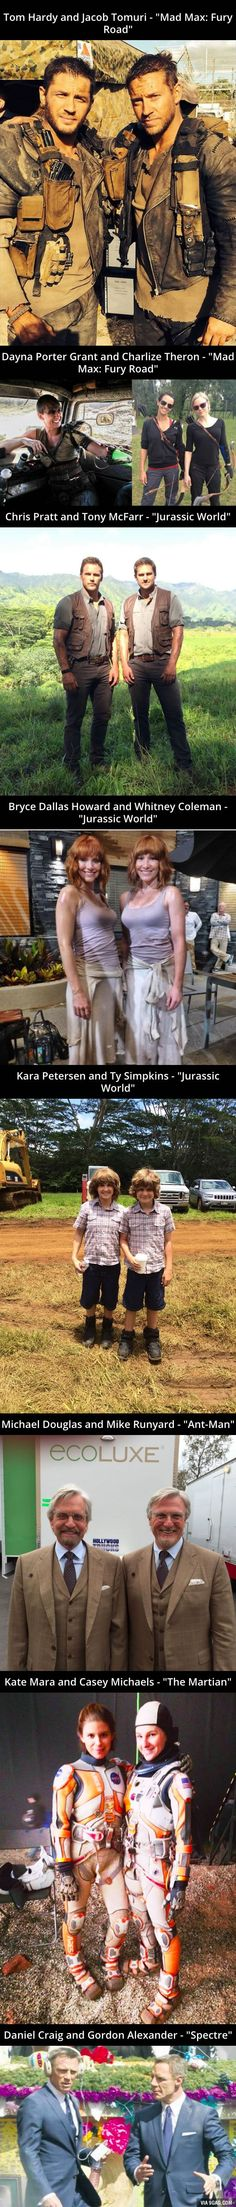 """Actors and actresses with their stunt doubles from """"Mad Max: Fury Road"""", """"Jurassic World"""", """"Ant-Man"""", """"The Martian"""" and """"Spectre"""""""